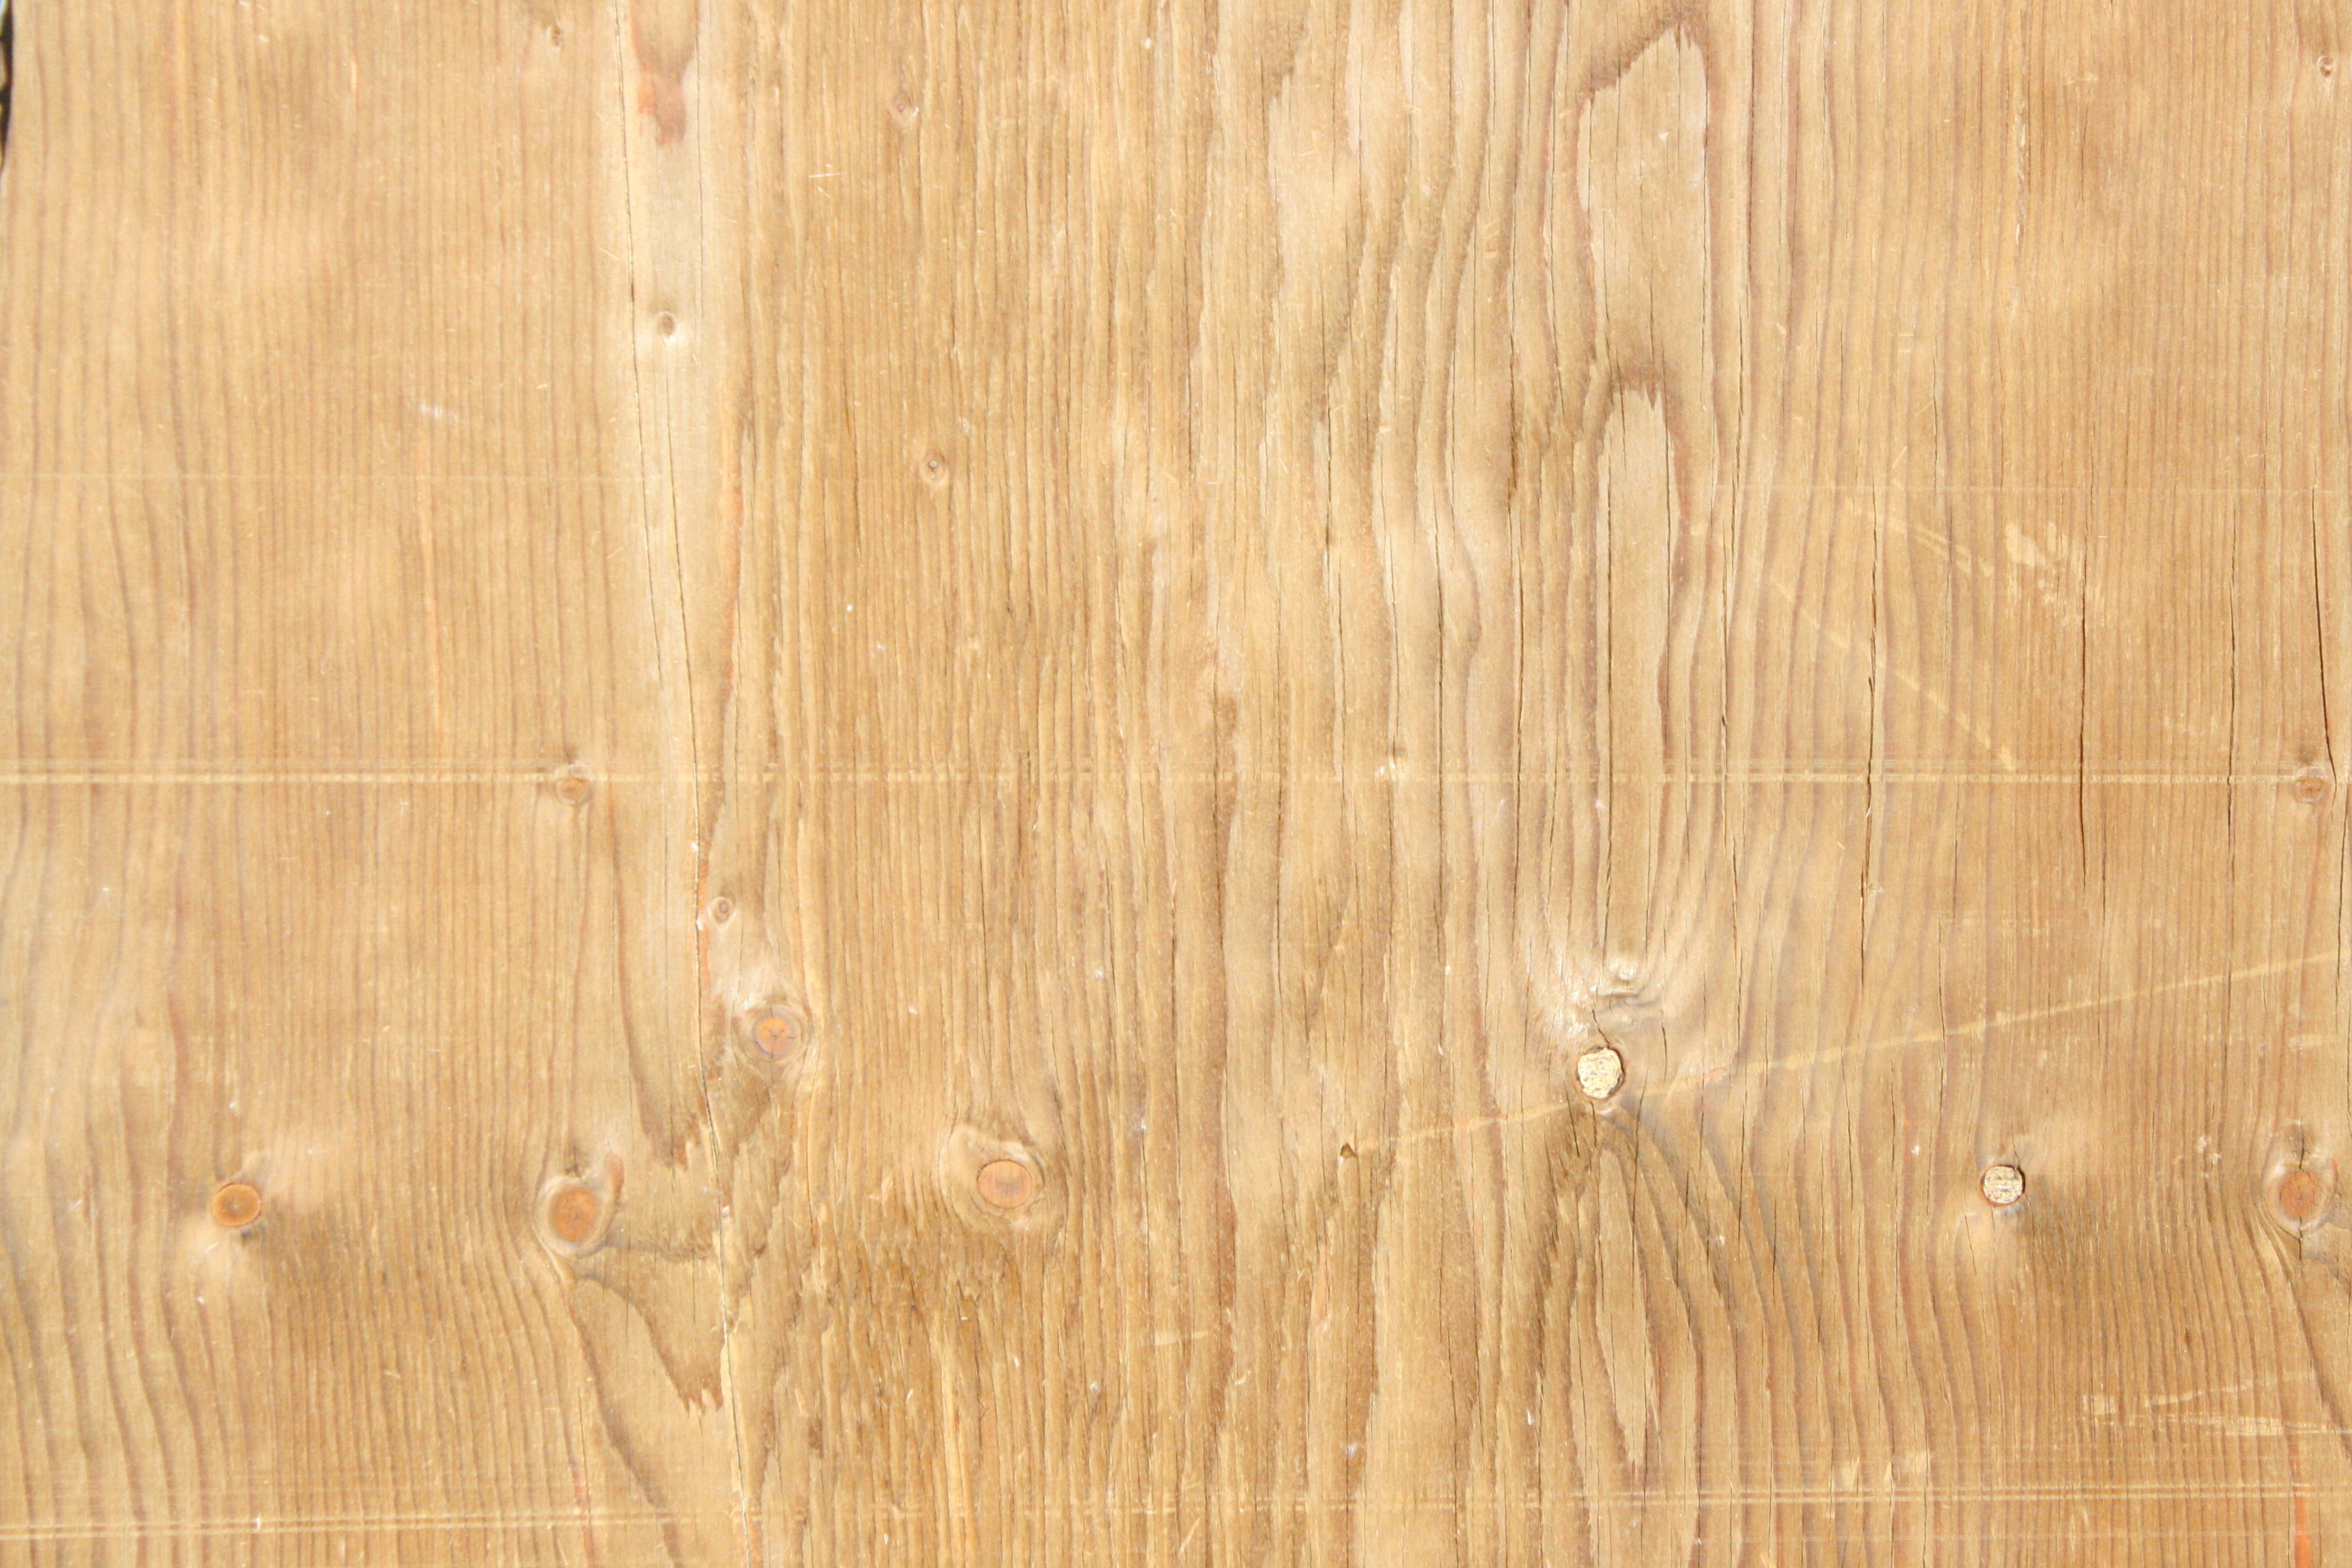 3d wooden texture pack cgtrader wooden texture pack 3d model 1 thecheapjerseys Image collections